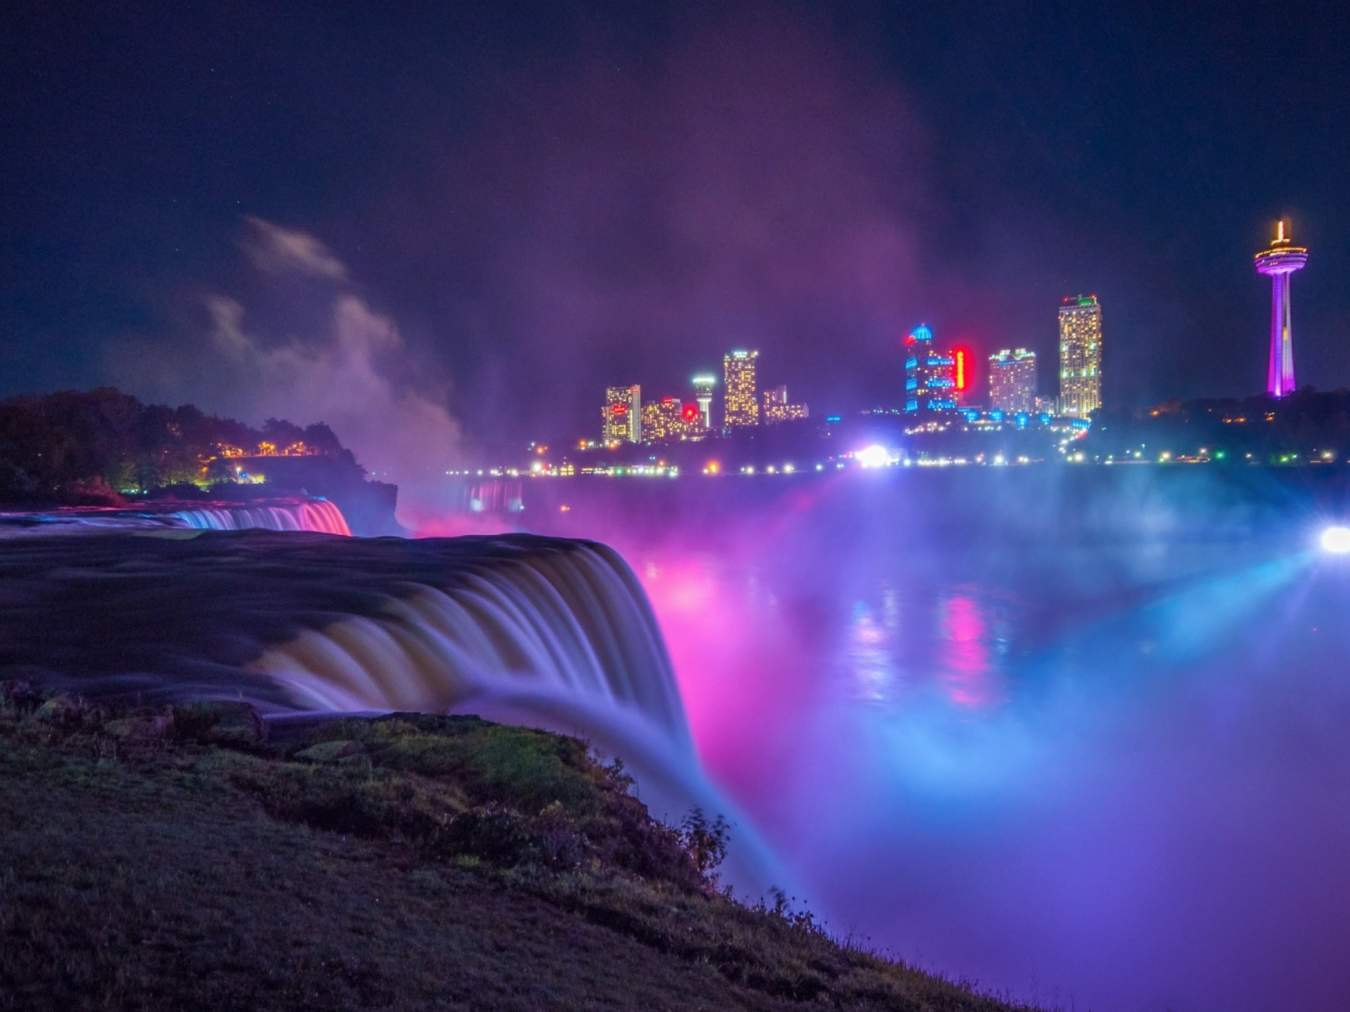 Niagara_Falls_USA_by_night_-_2014-10-09_-_image_3-1